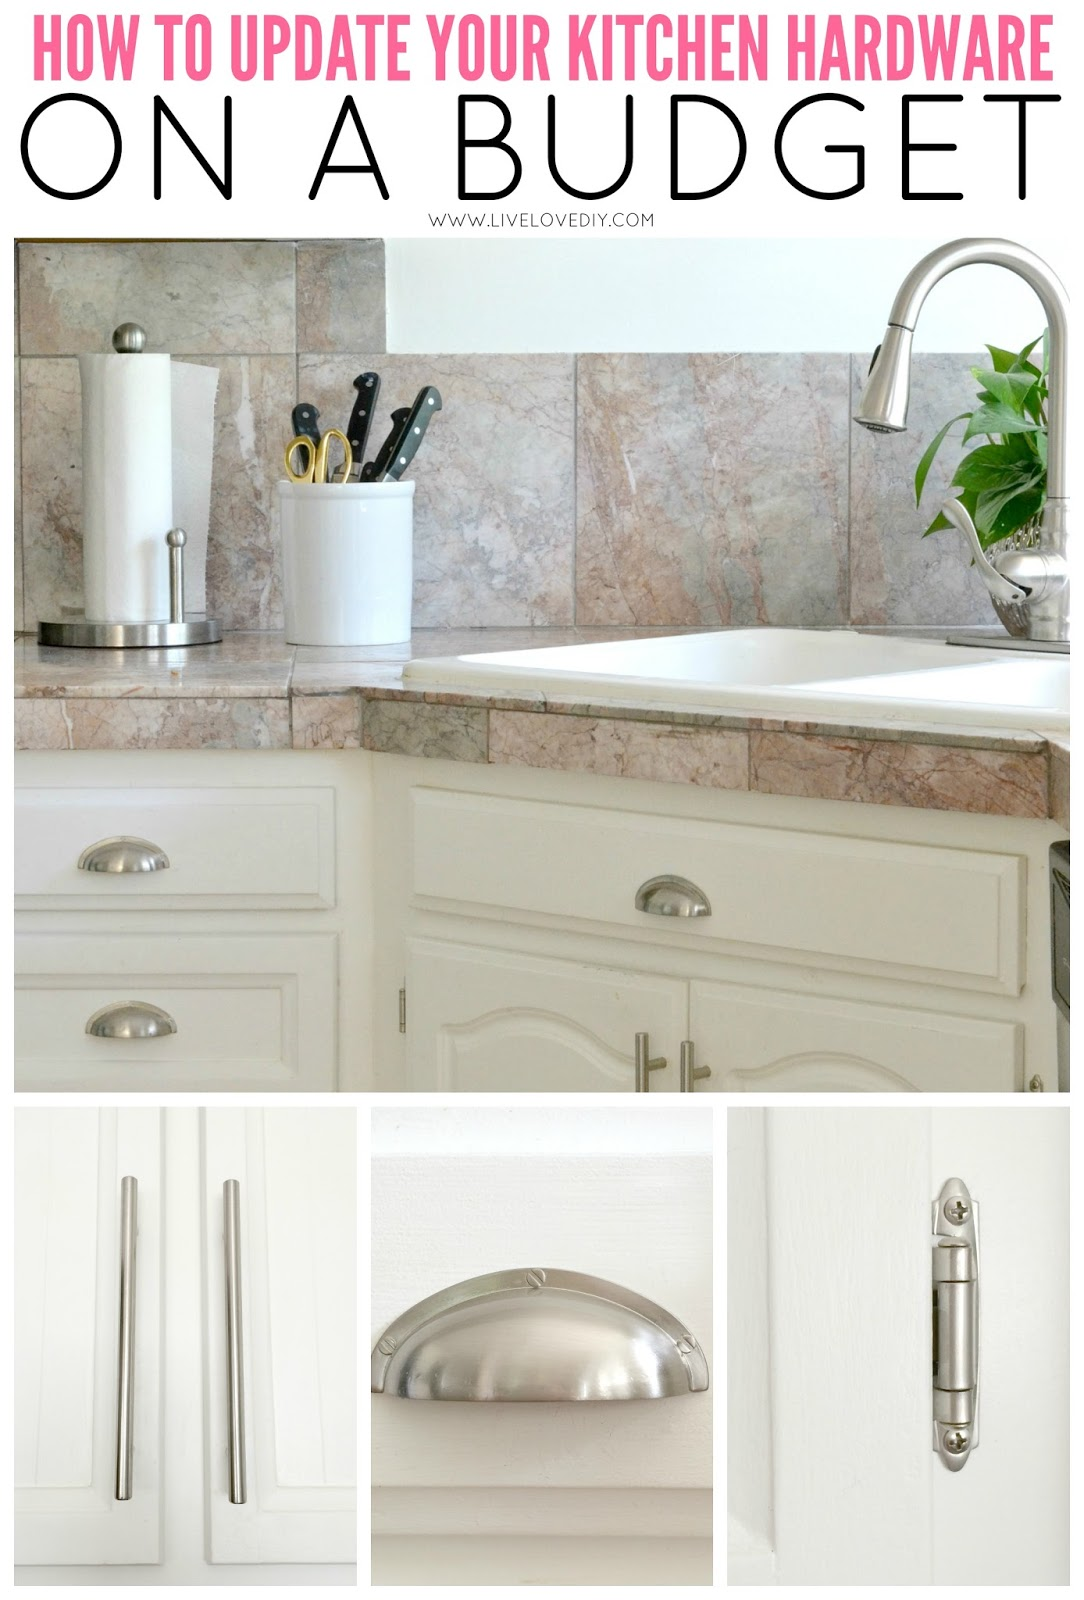 10 easy steps to paint kitchen cabinets hardware for kitchen cabinets Ever